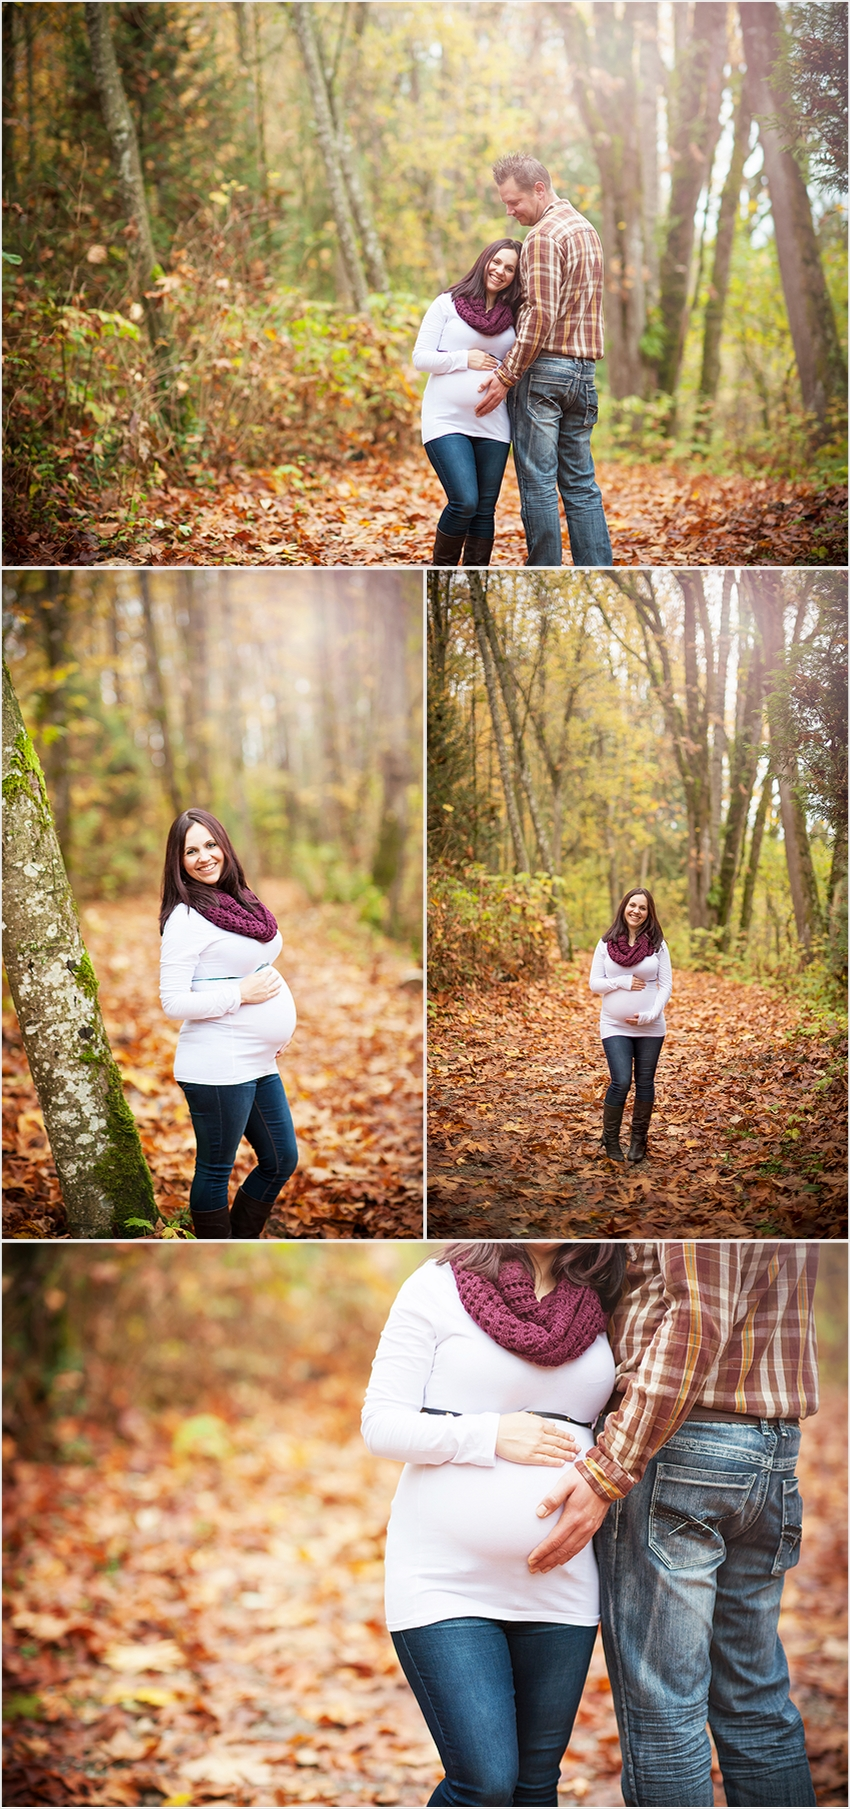 abbotsford-family-maternity-photographer-007-side-7